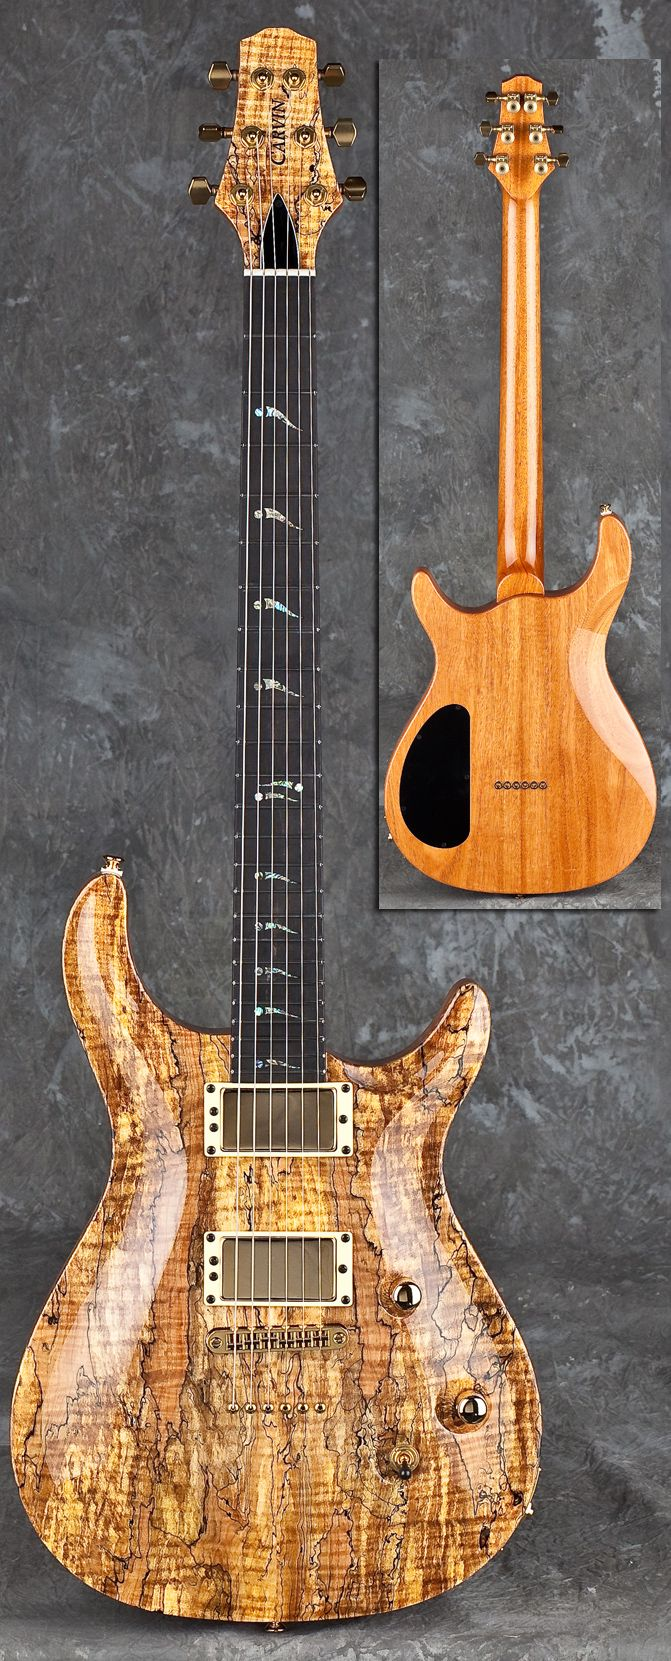 Ct m california carved top spalted maple guitar by